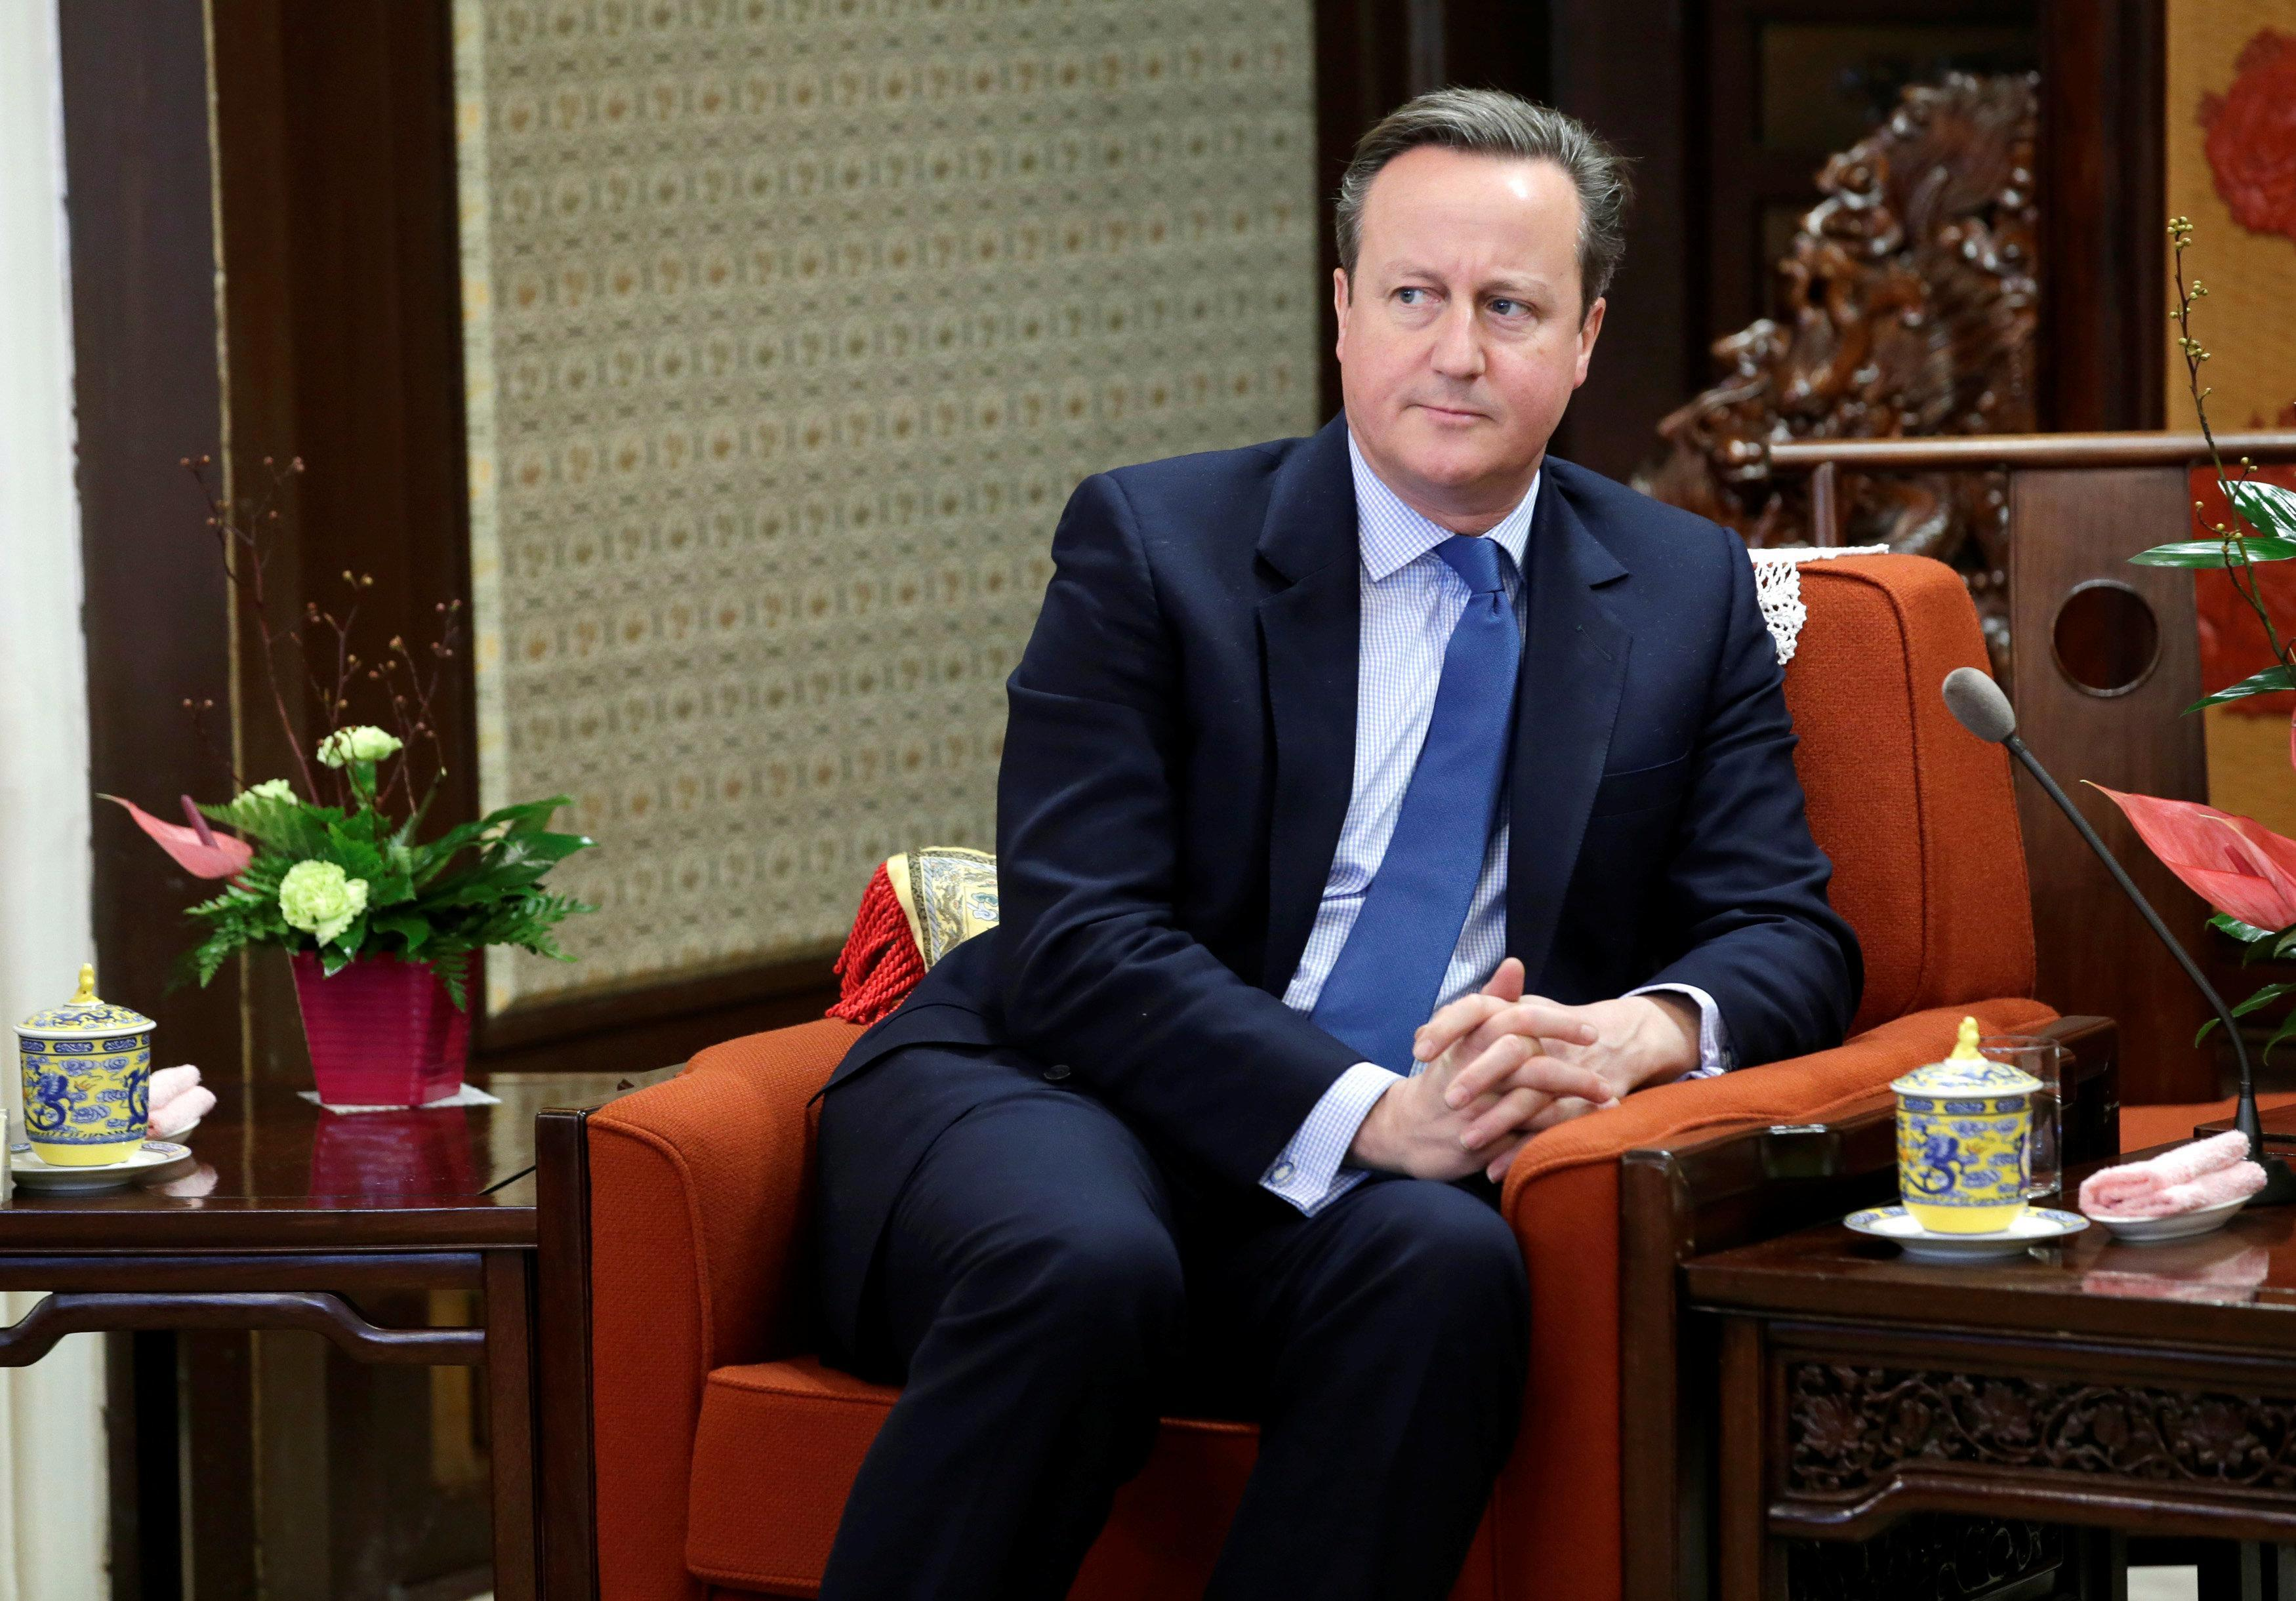 Theresa May is being advised by David Cameron on how to pass her Brexit deal